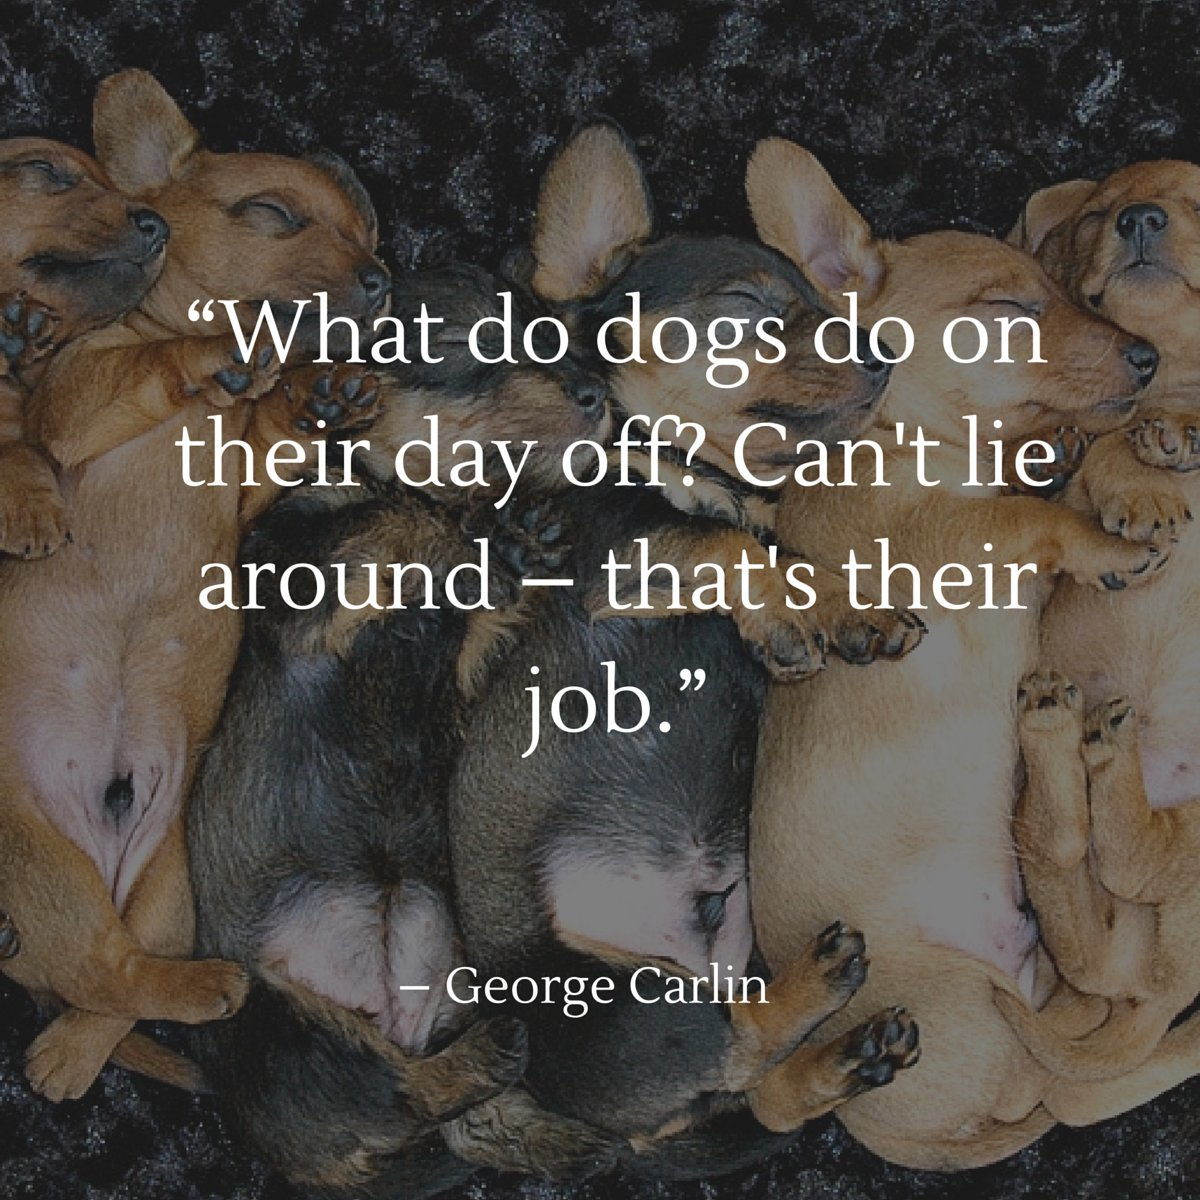 What do dogs do on their day off? They can&#39;t lie around, that&#39;s their job! -George Carlin #quote #doglover <br>http://pic.twitter.com/aUup0IIAAt